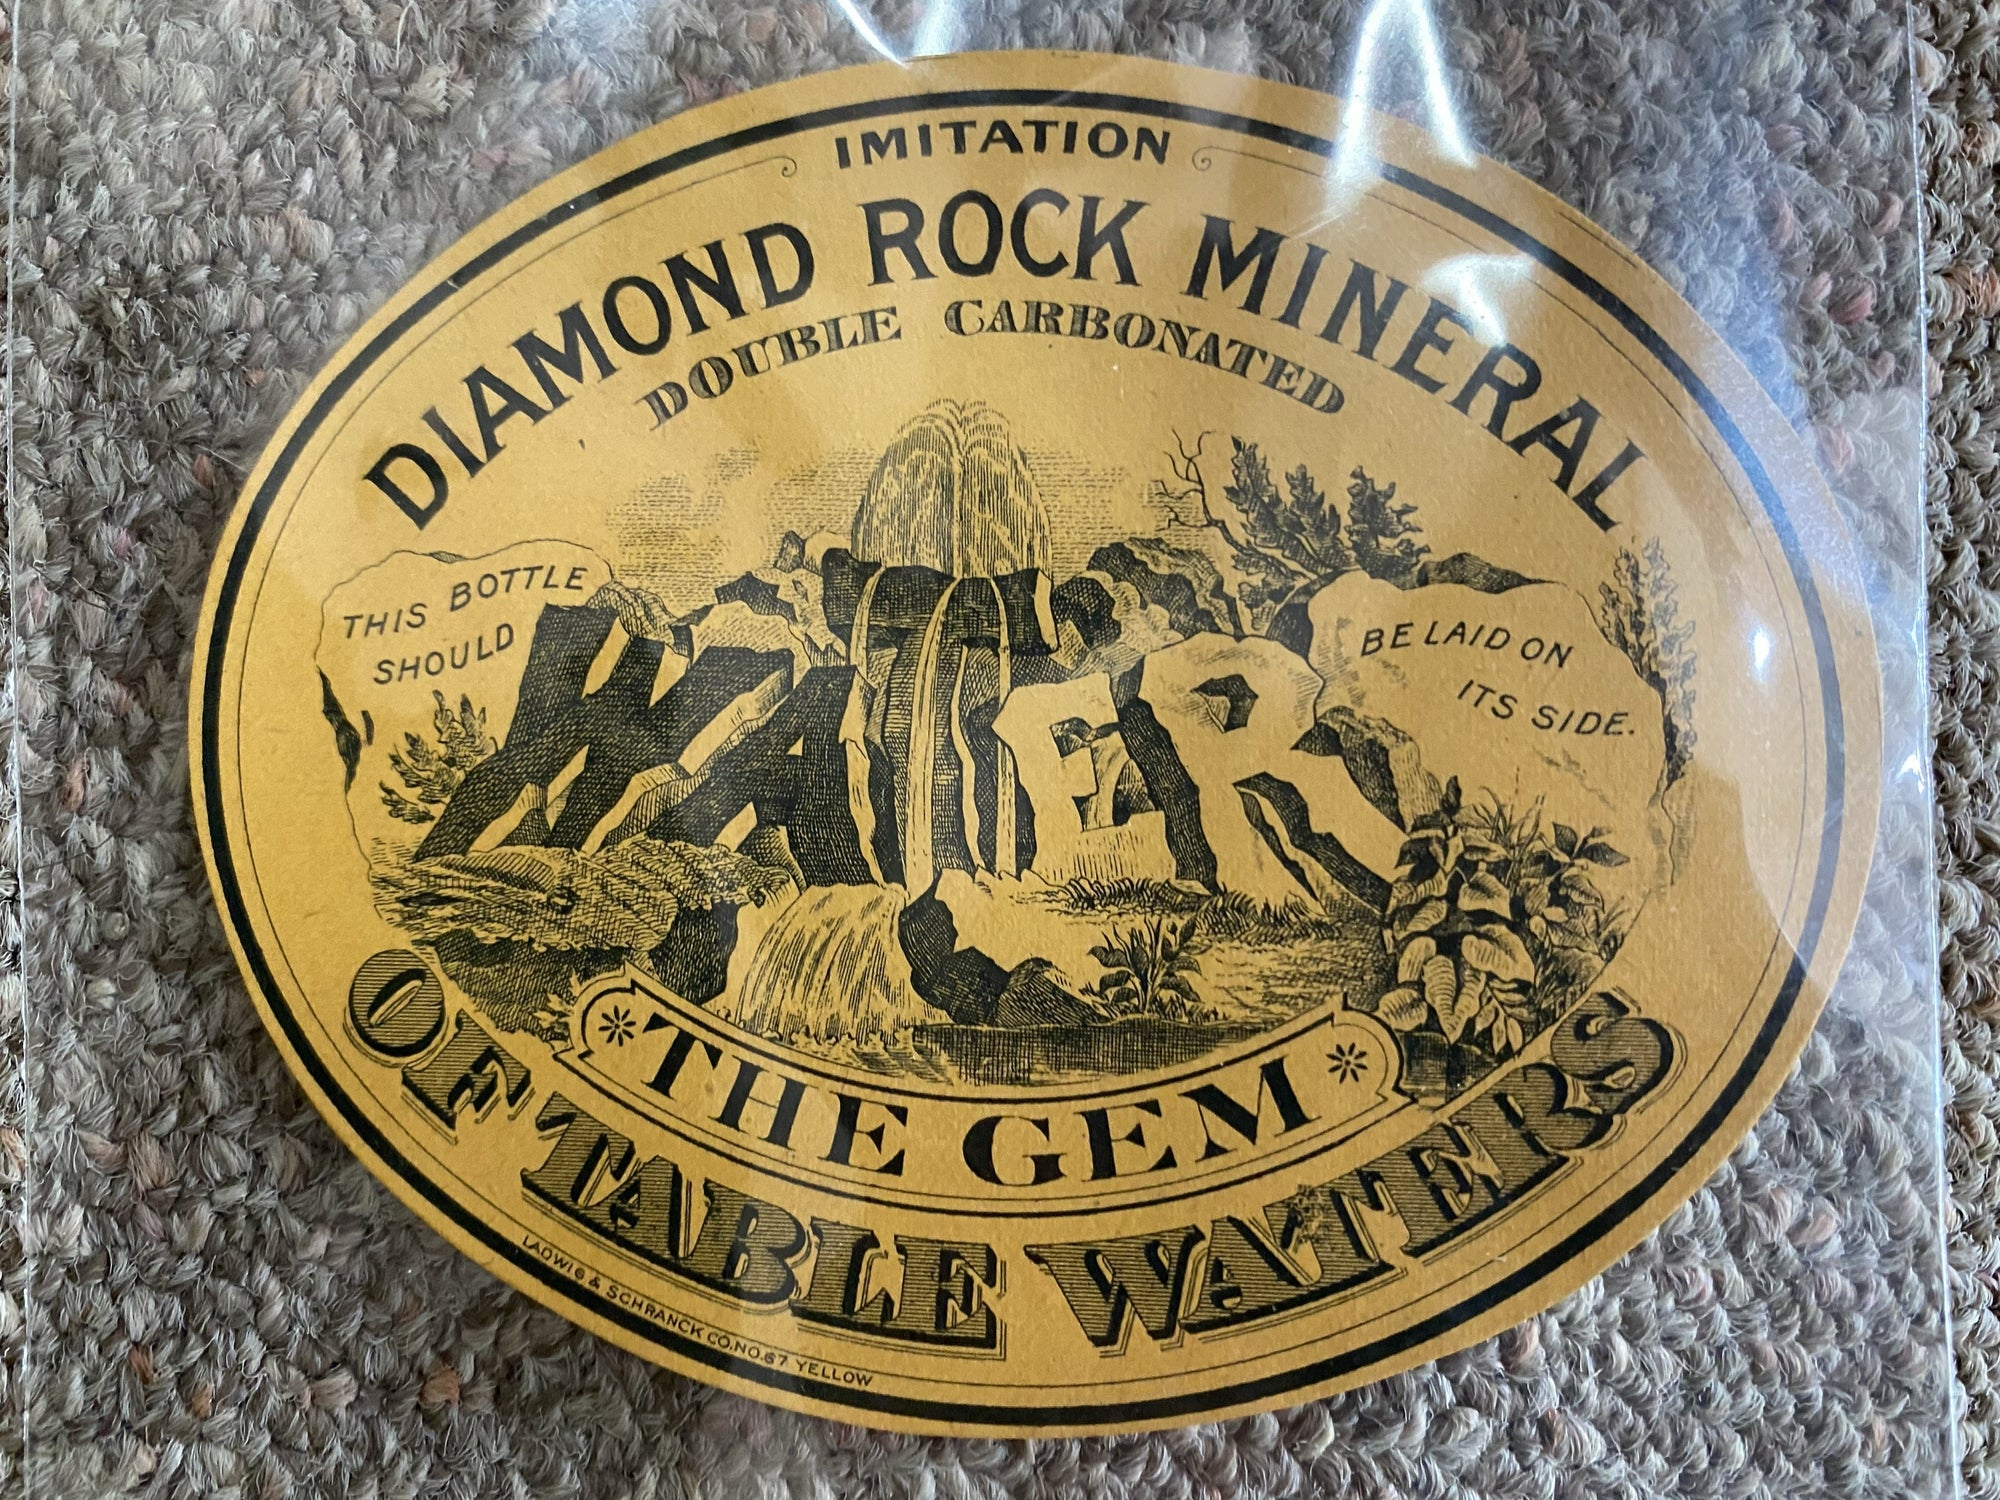 Civil War era bottle label for Diamond Rock mineral water, circa 1880. Mint condition.